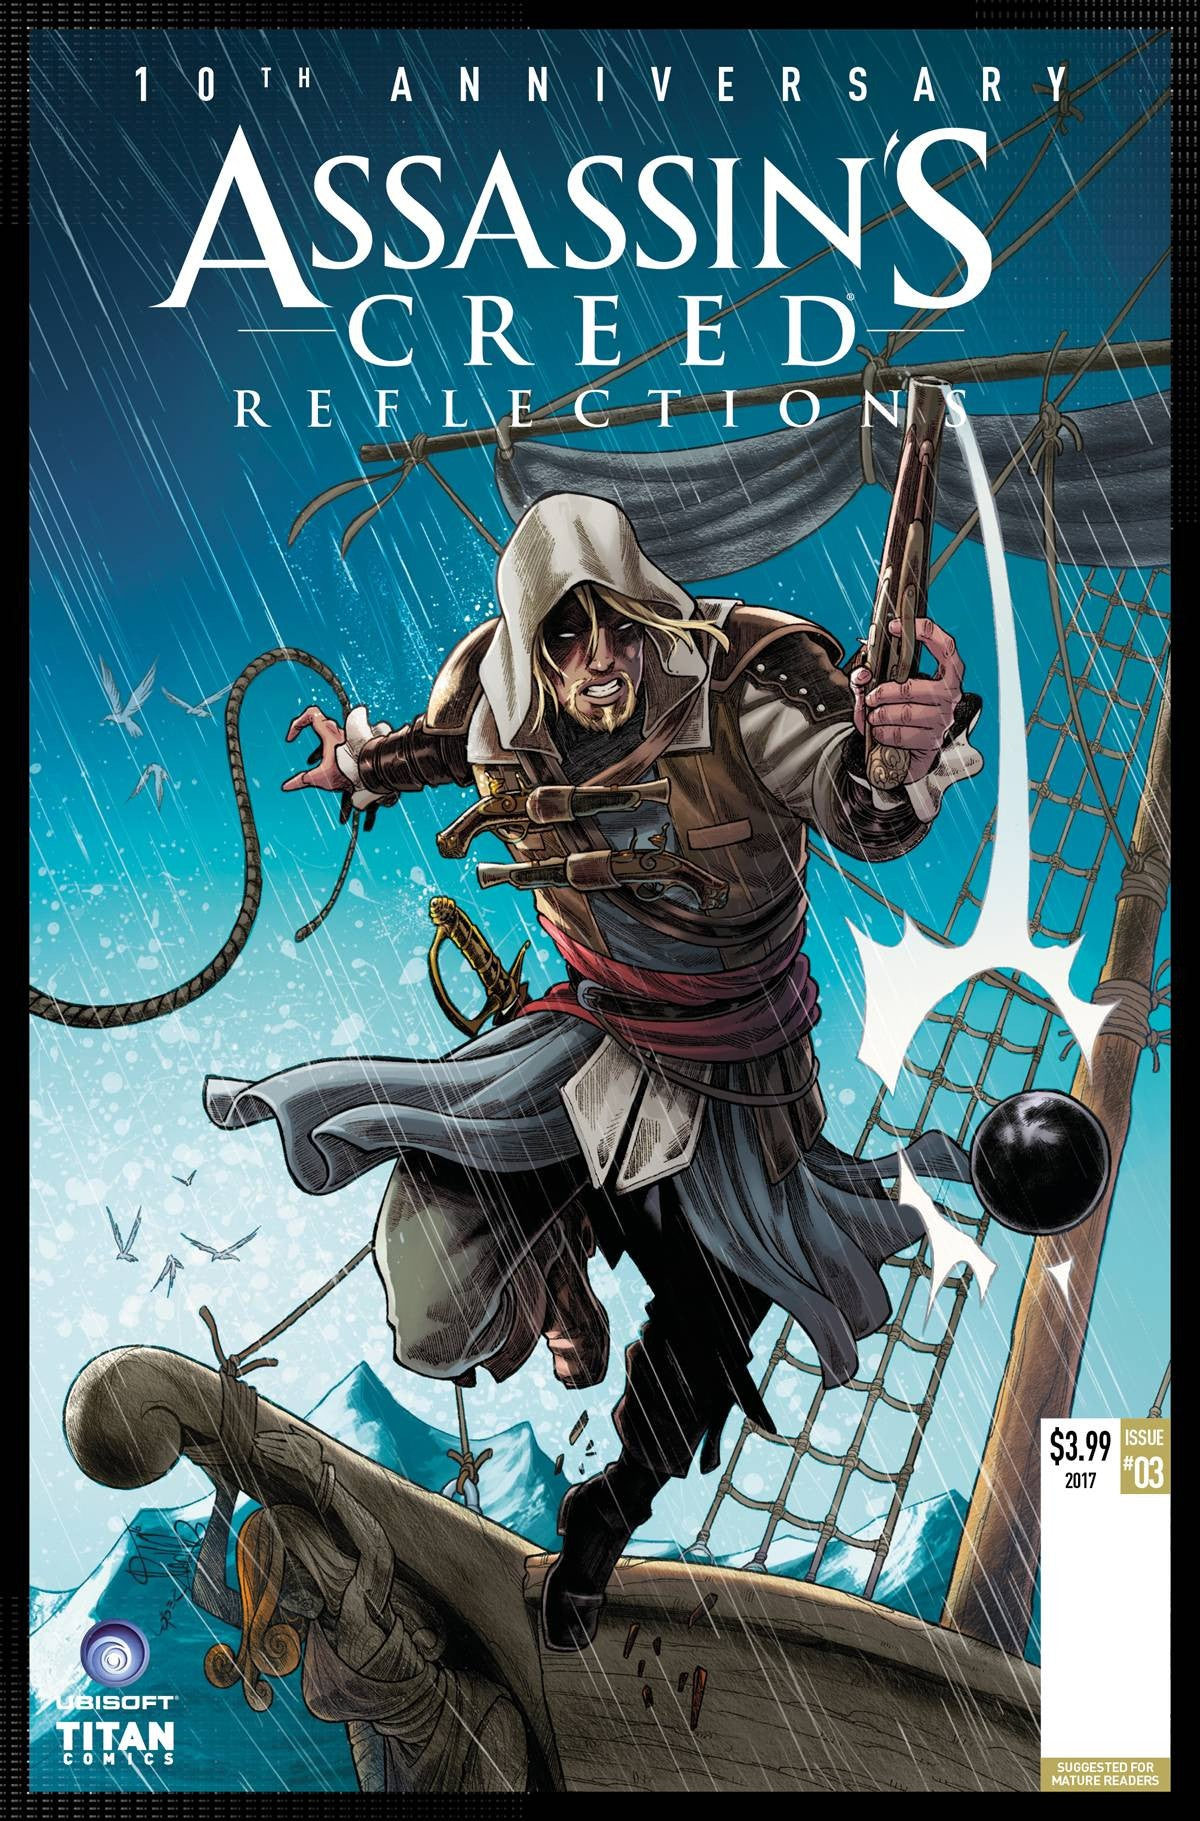 ASSASSINS CREED REFLECTIONS #3 (OF 4) CVR B ARRANZ